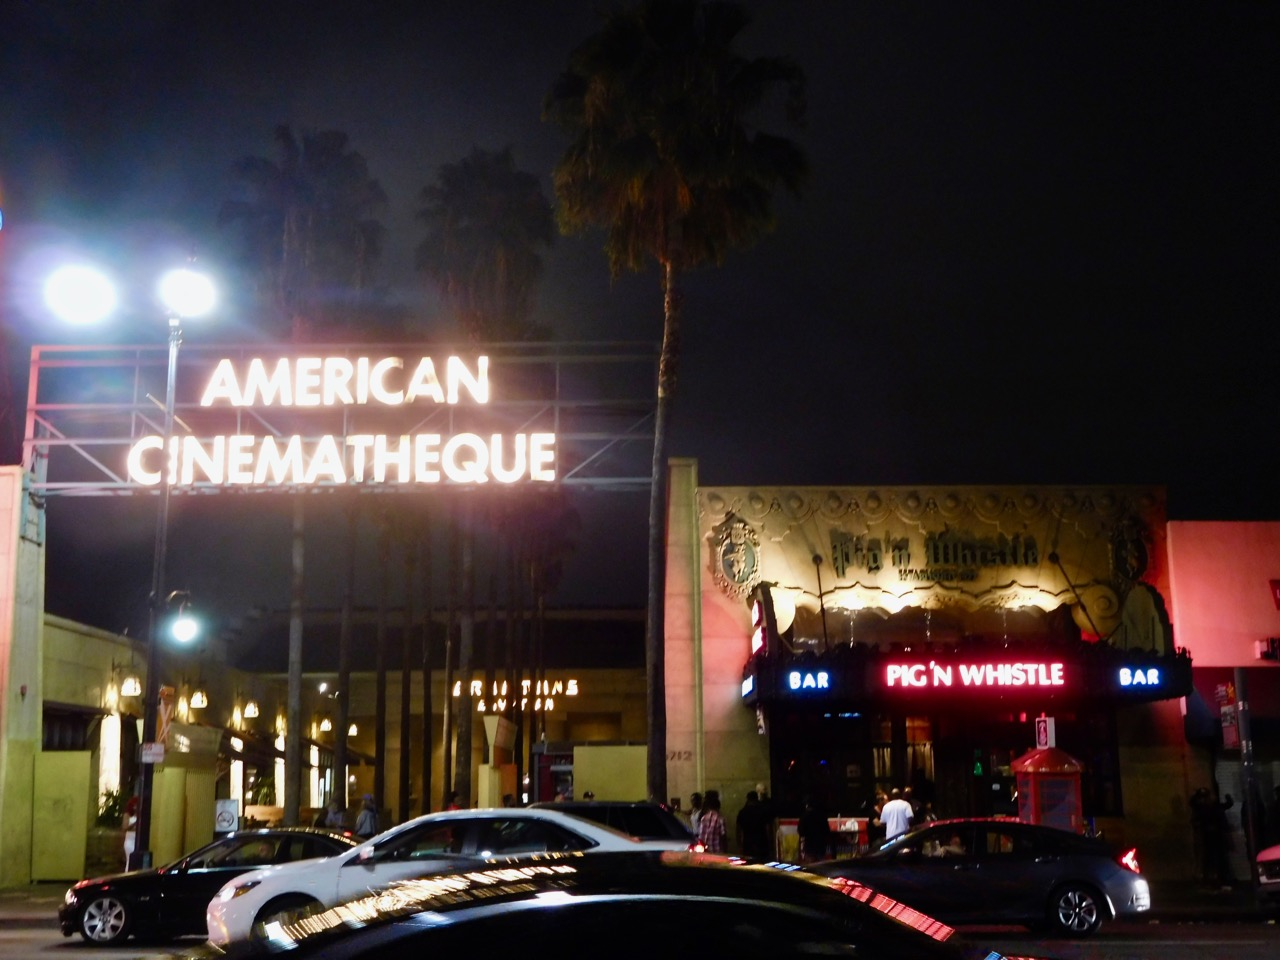 3 Days in L.A. - Hollywood Boulevard at night (1)